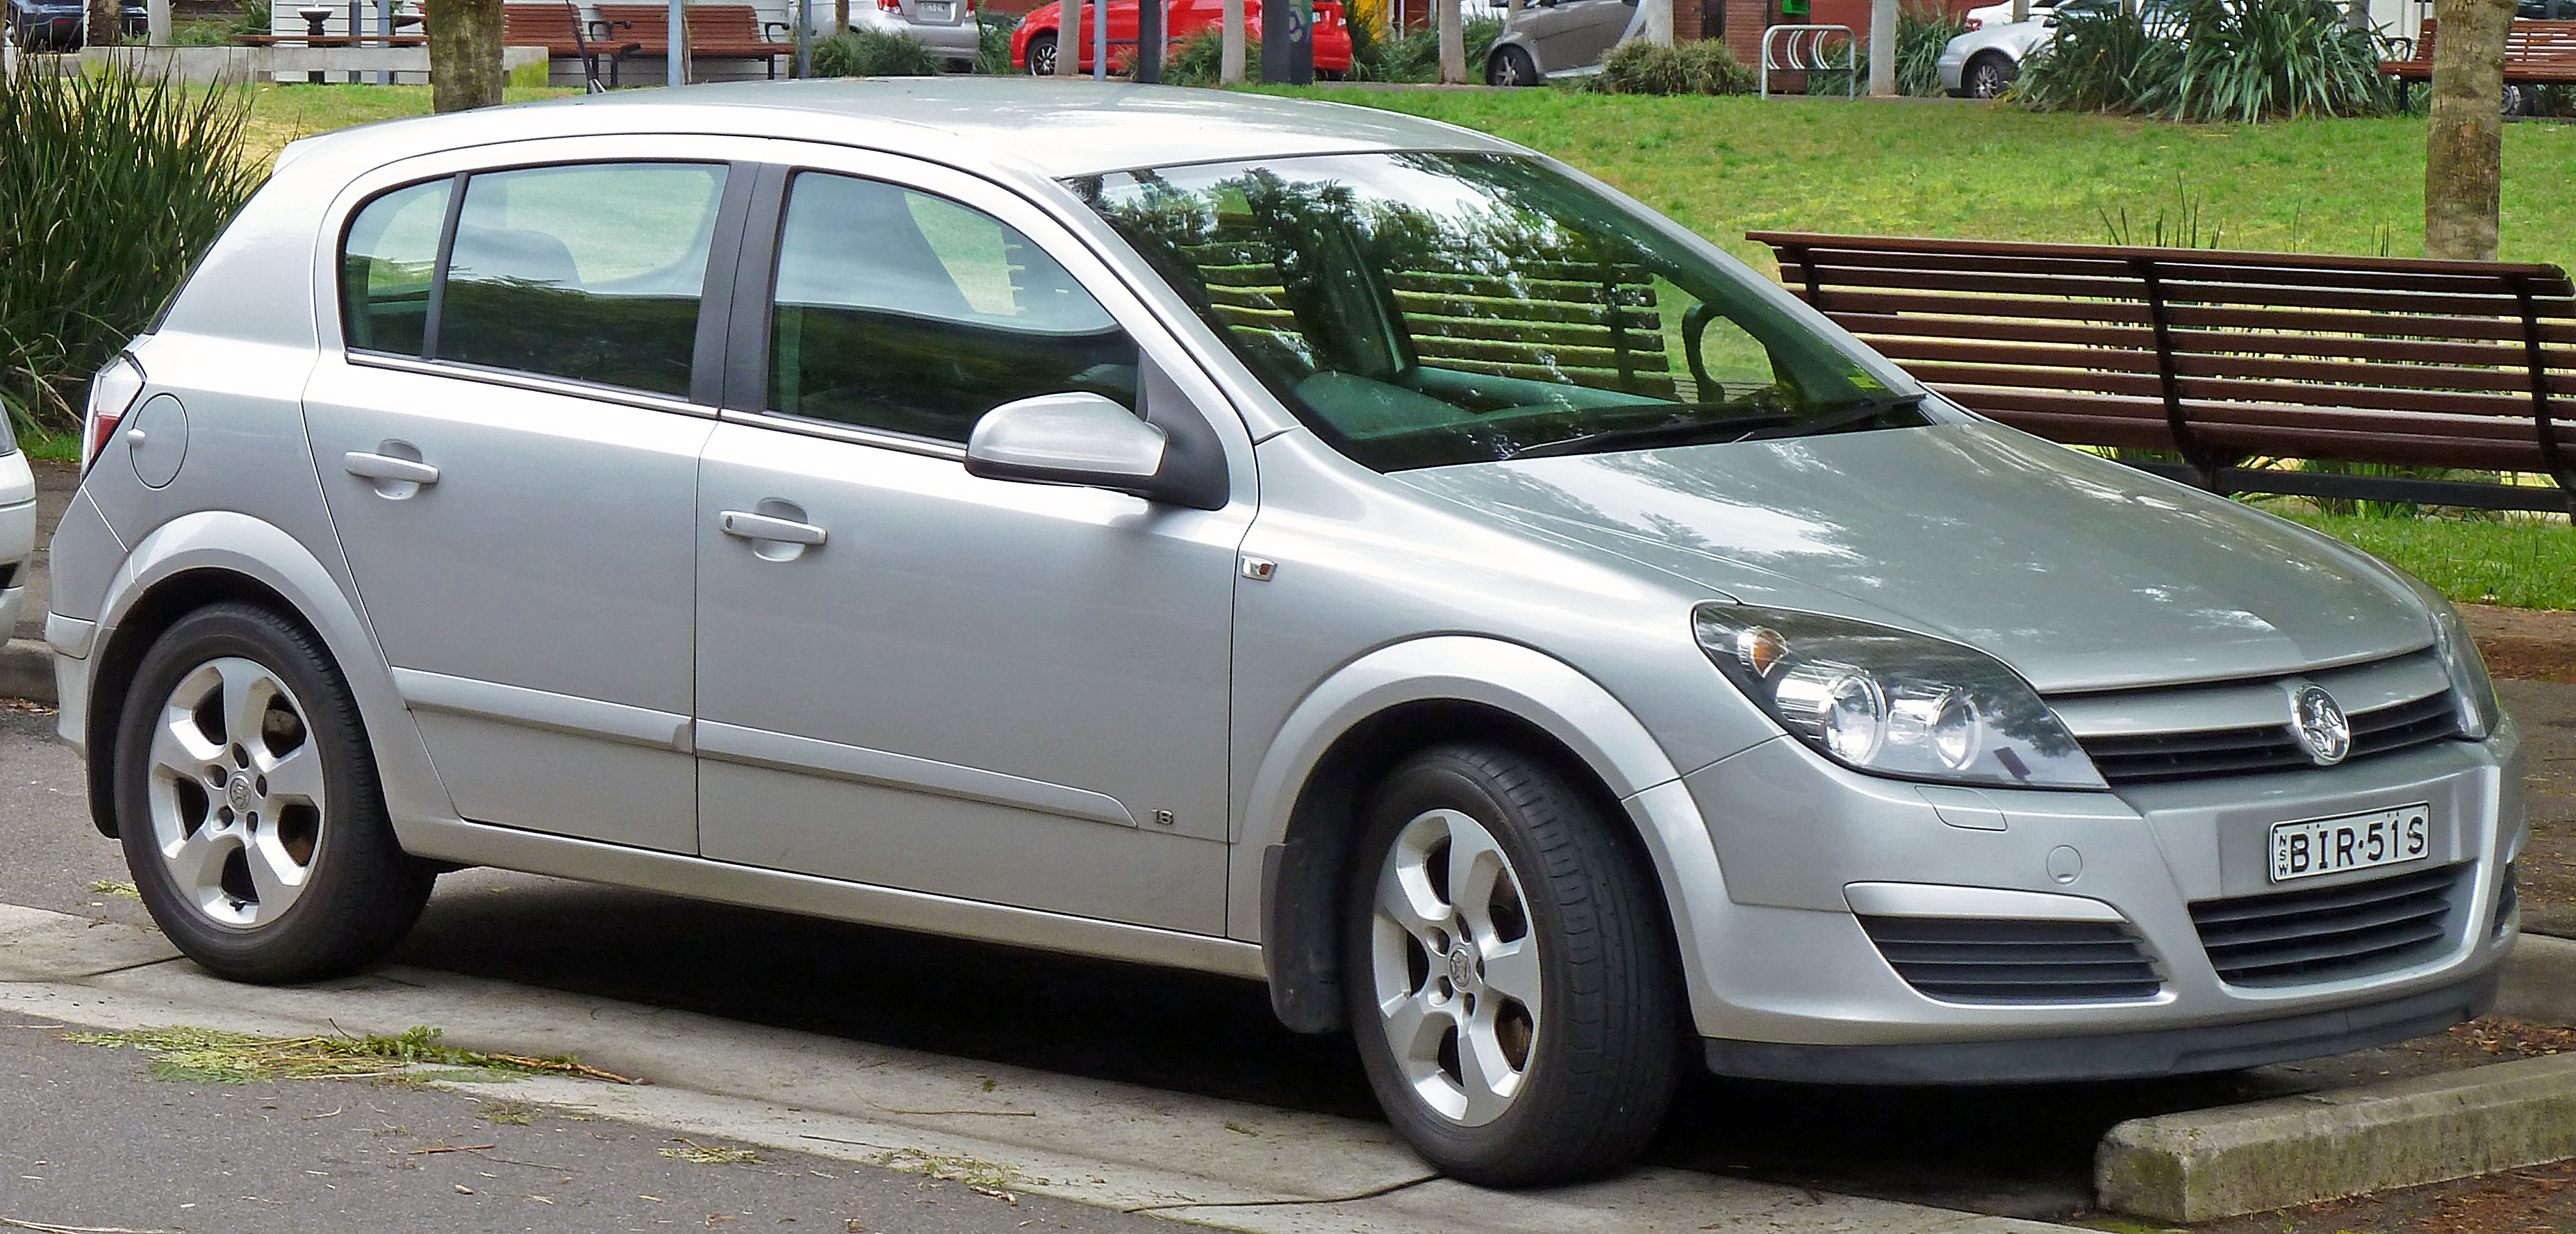 holden astra pics #8